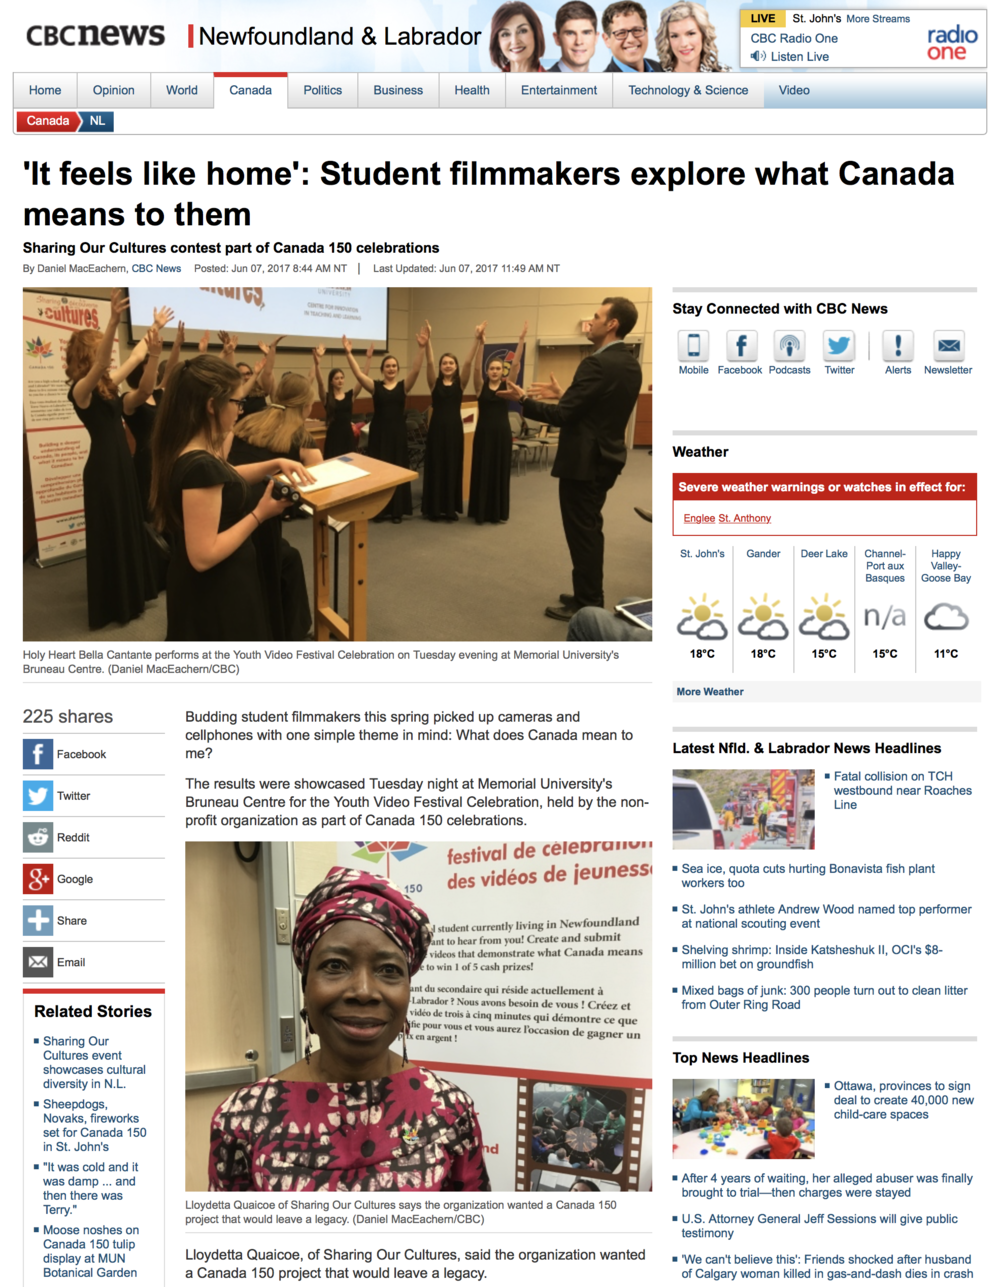 Read the article here...http://www.cbc.ca/news/canada/newfoundland-labrador/youth-video-festival-celebration-canada-150-1.4148918